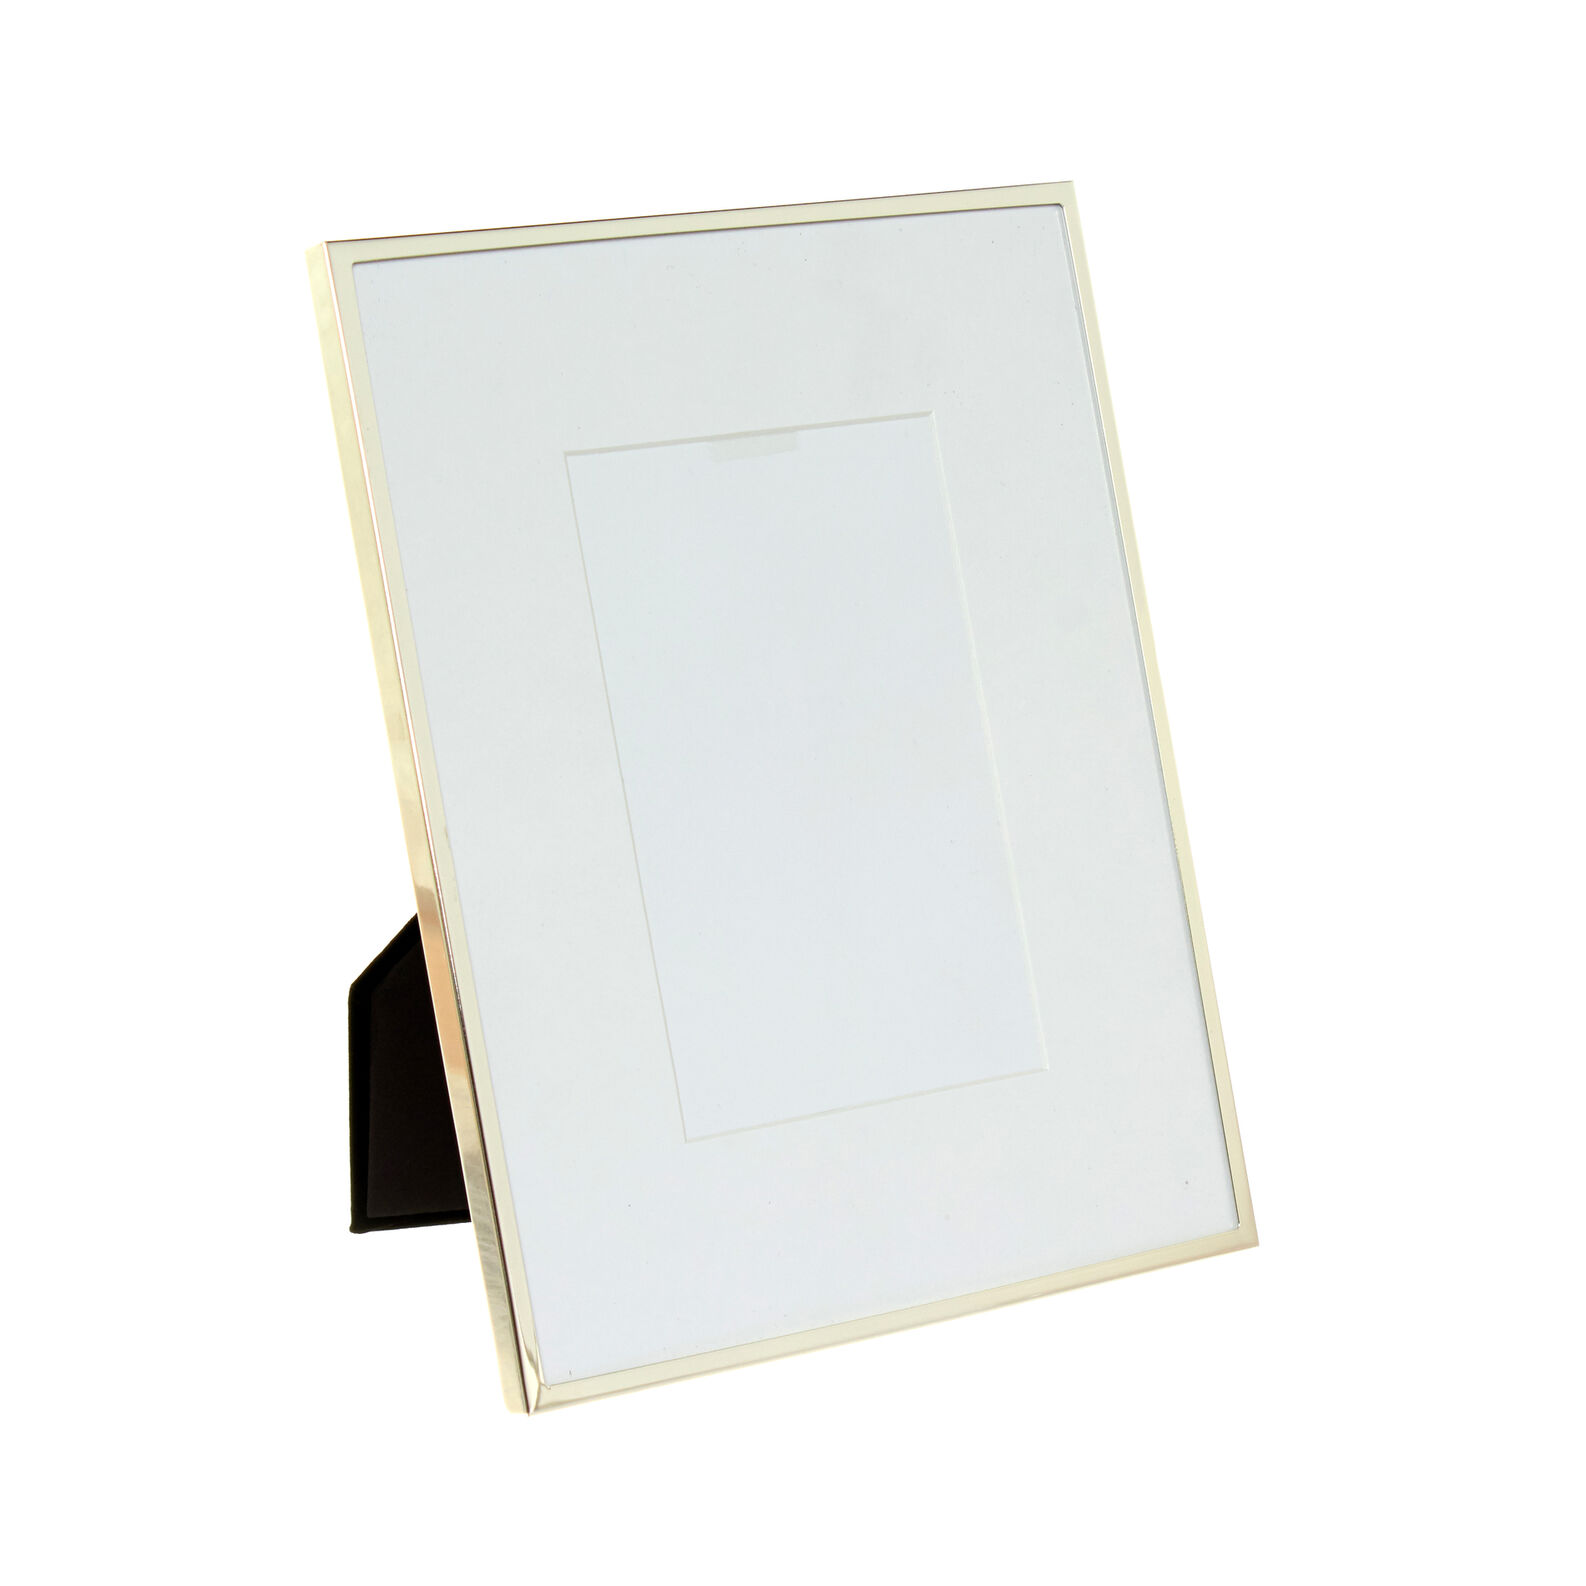 Silver-plated photo frame with passepartout